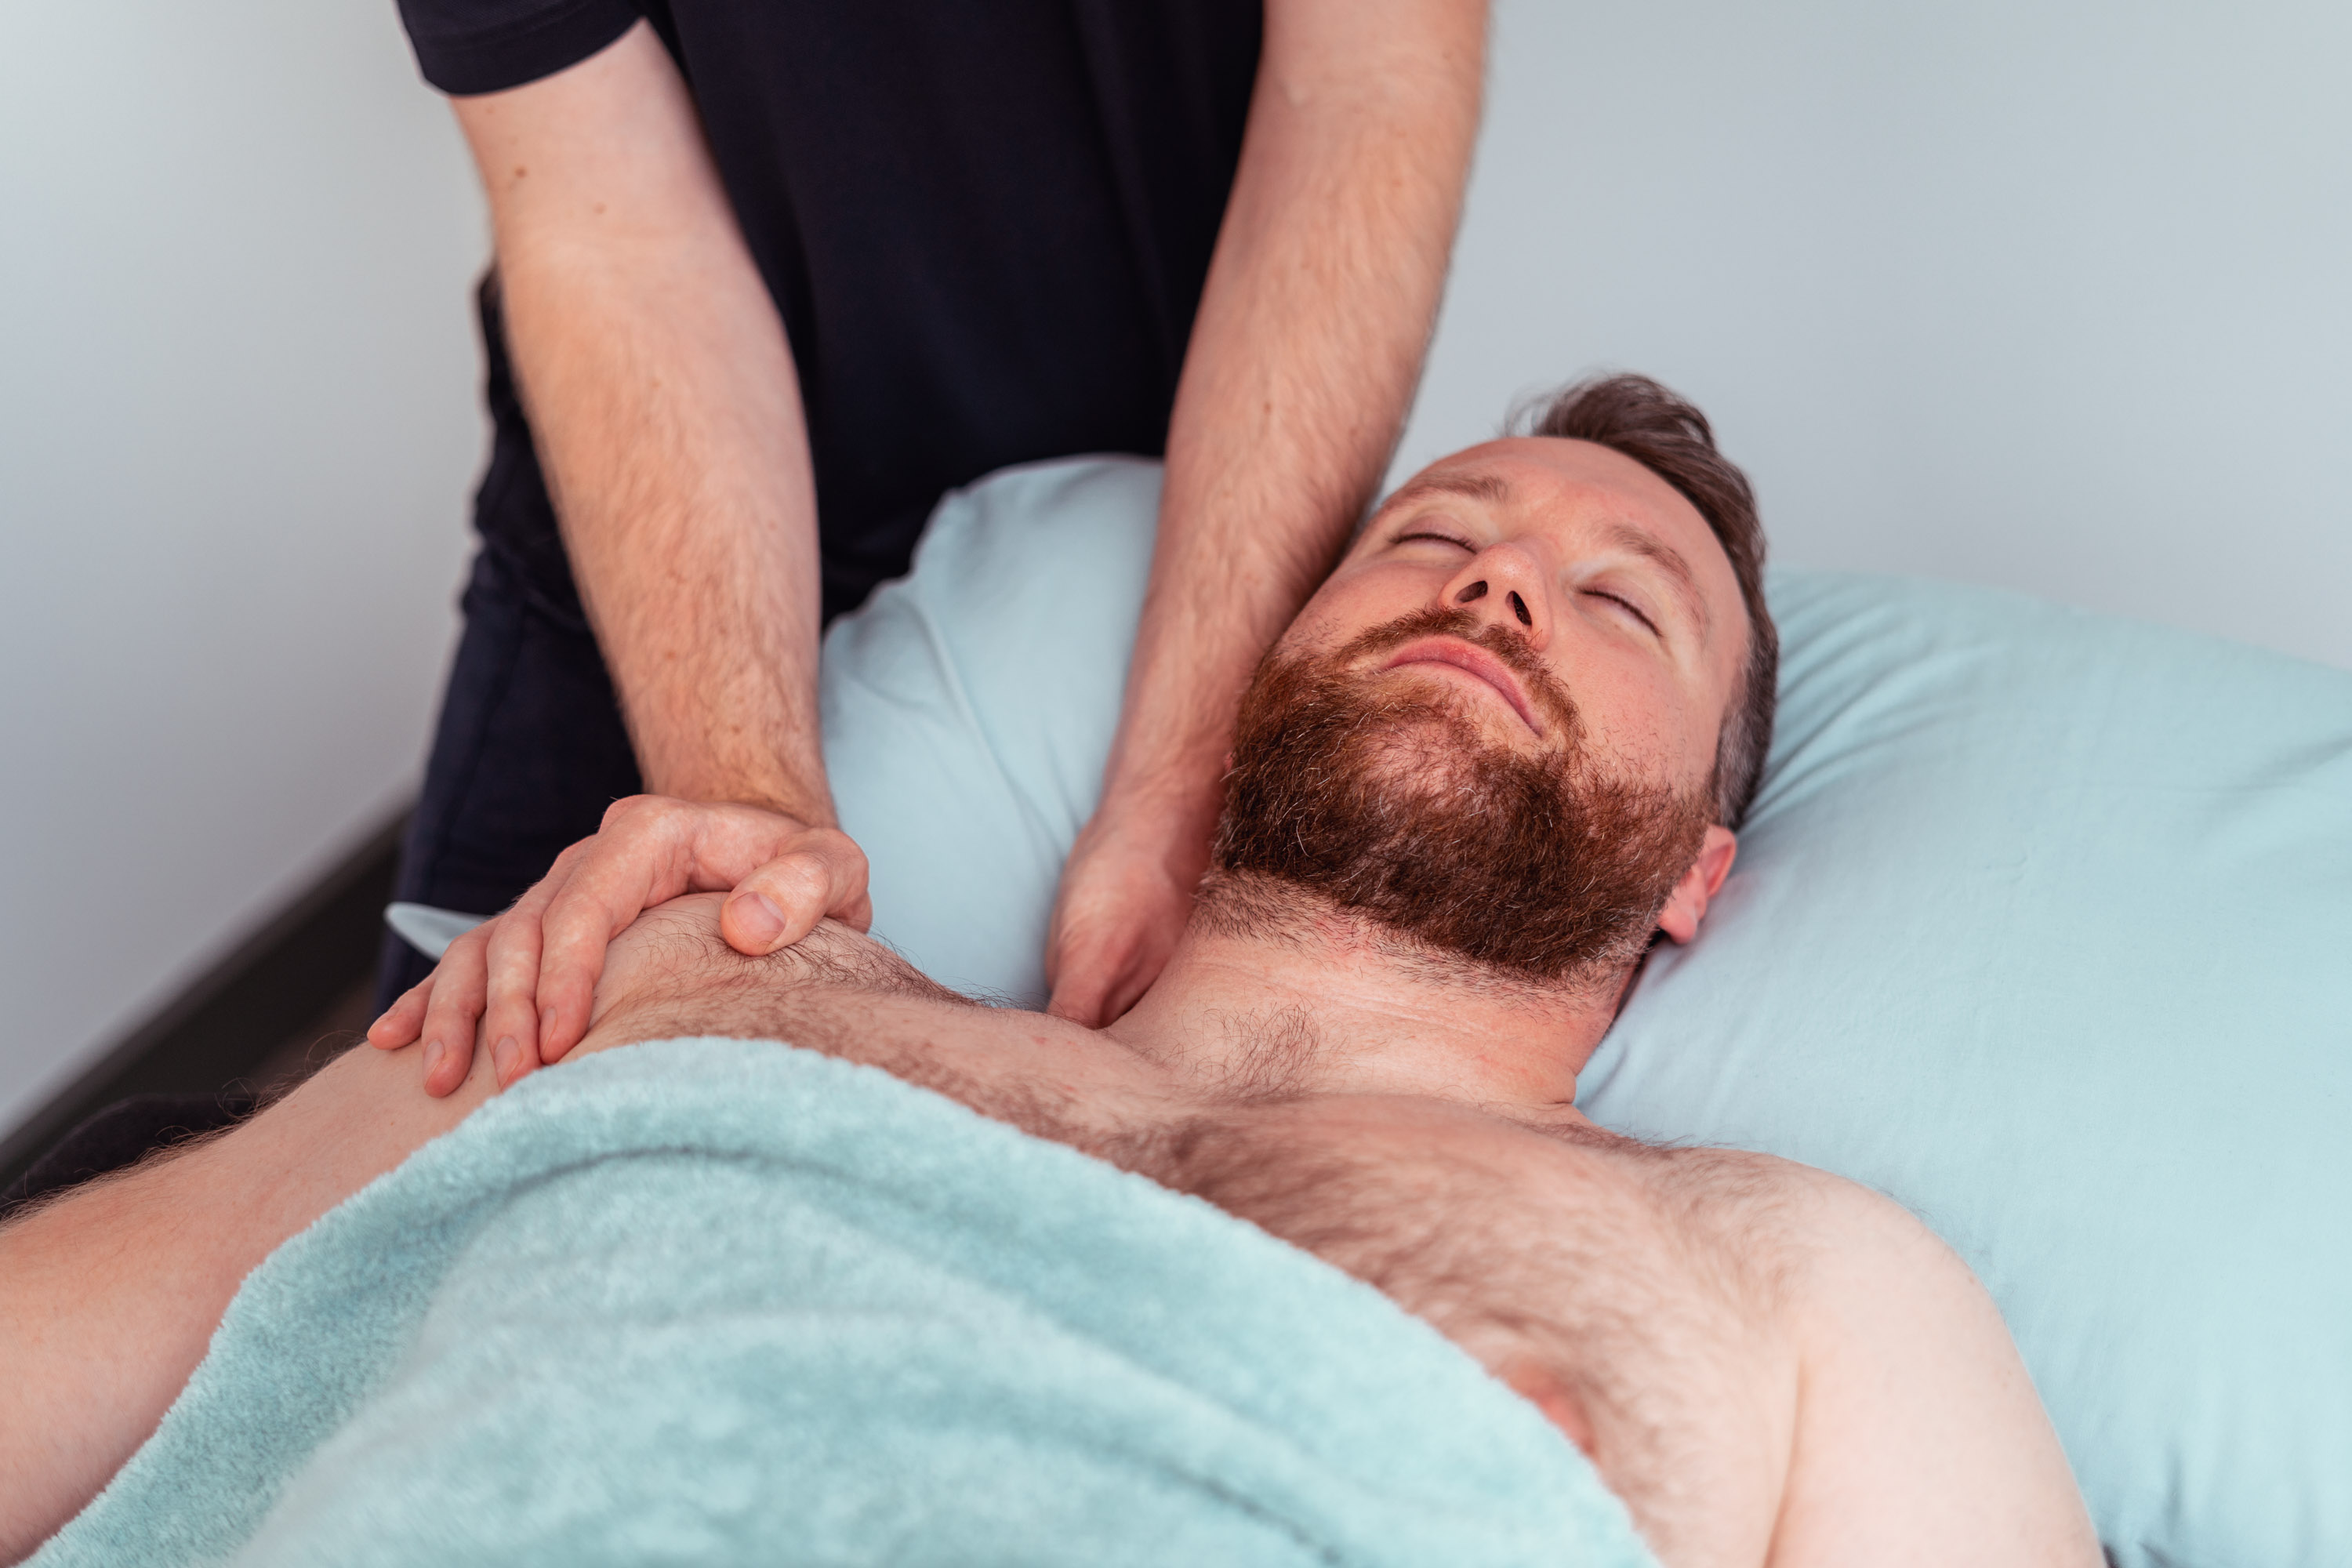 Supine shoulder massage